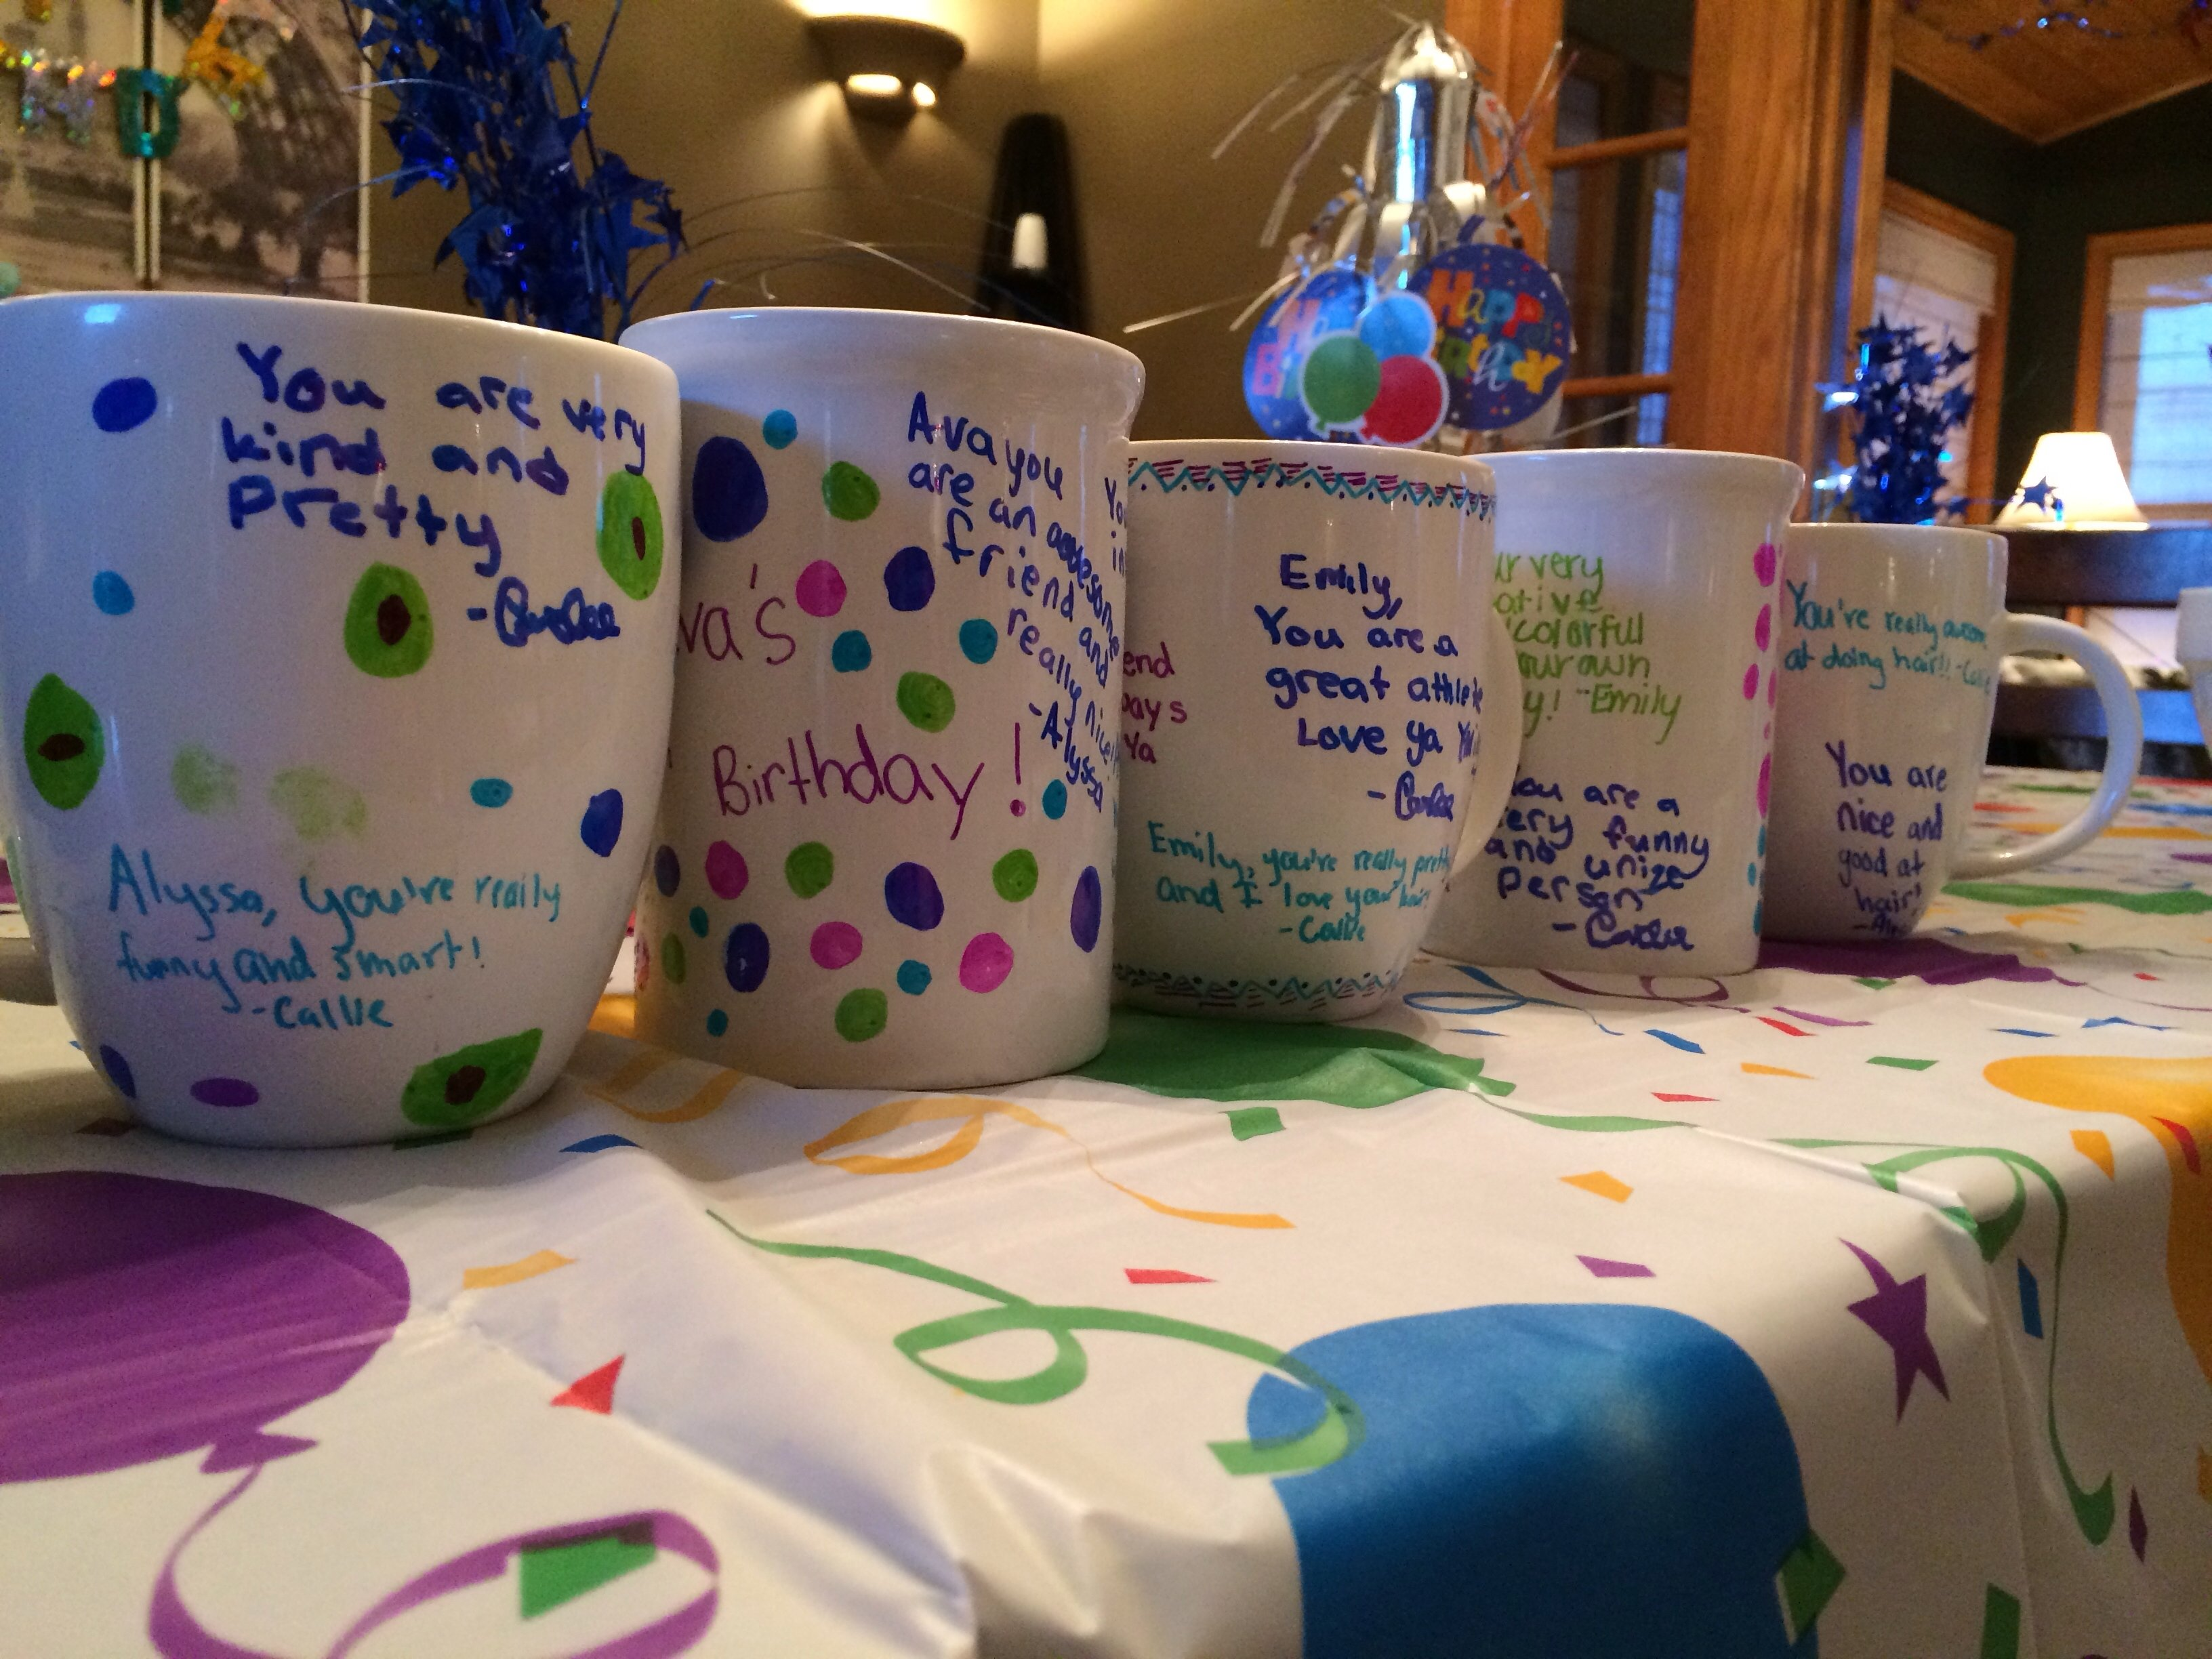 10 Attractive 12 Year Old Birthday Ideas slumber party invitation ideas homemade sharpie mugs birthday fun 9 2020